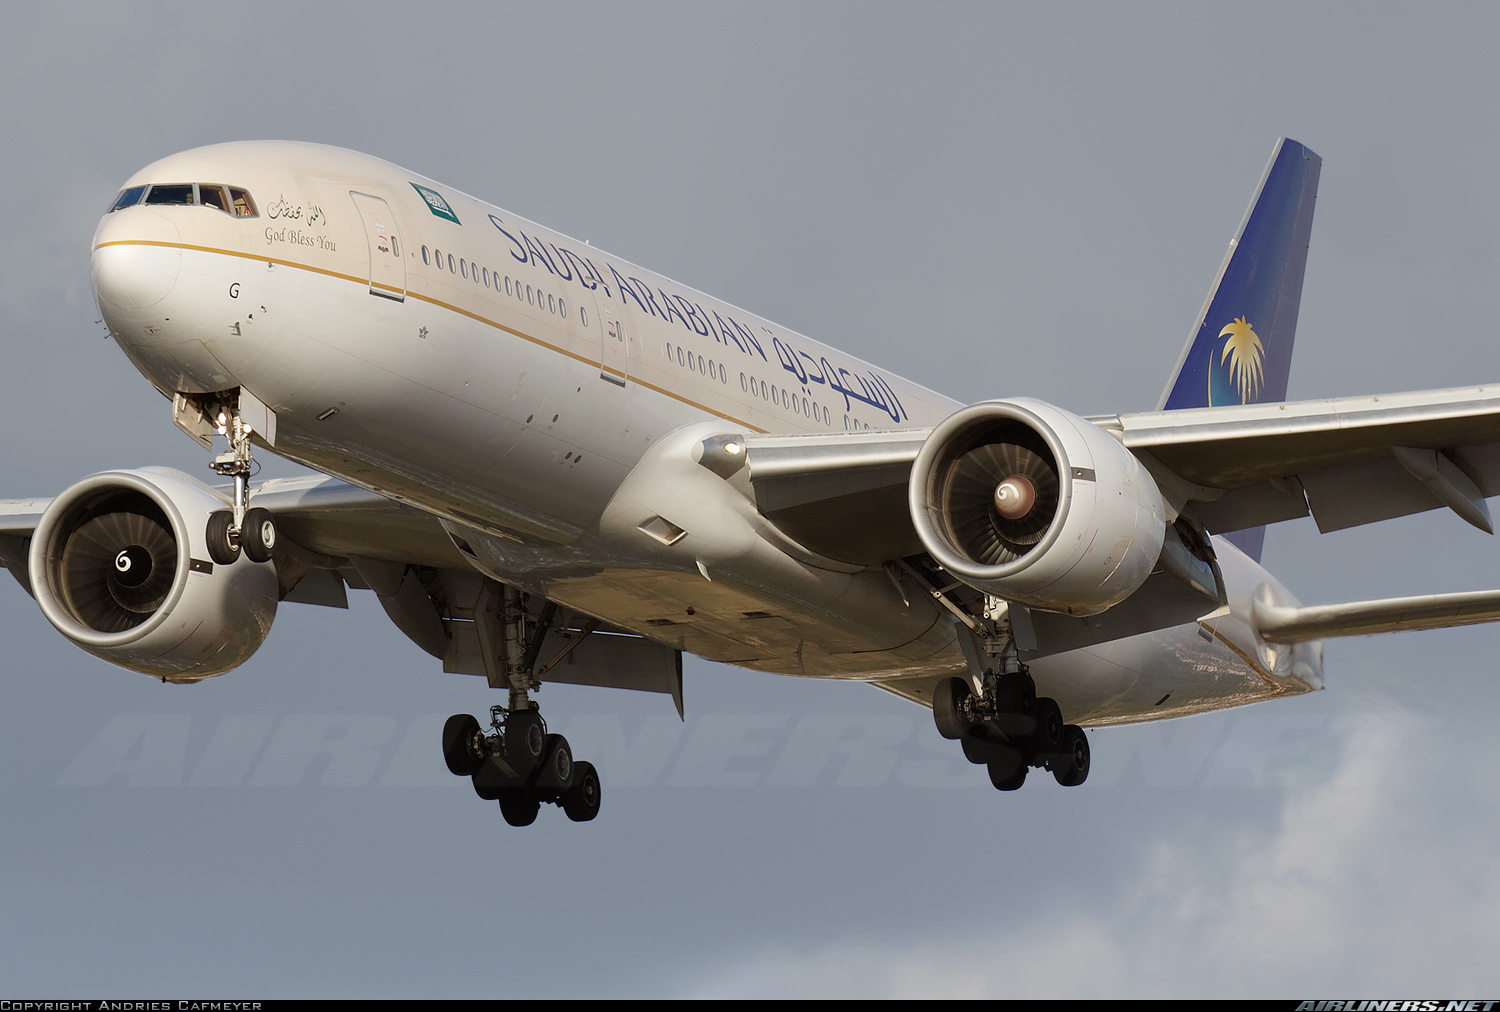 Saudi-Arabian-Airlines-HZ-AKG-Boeing-ER-aircraft-picture-wallpaper-wp4609780